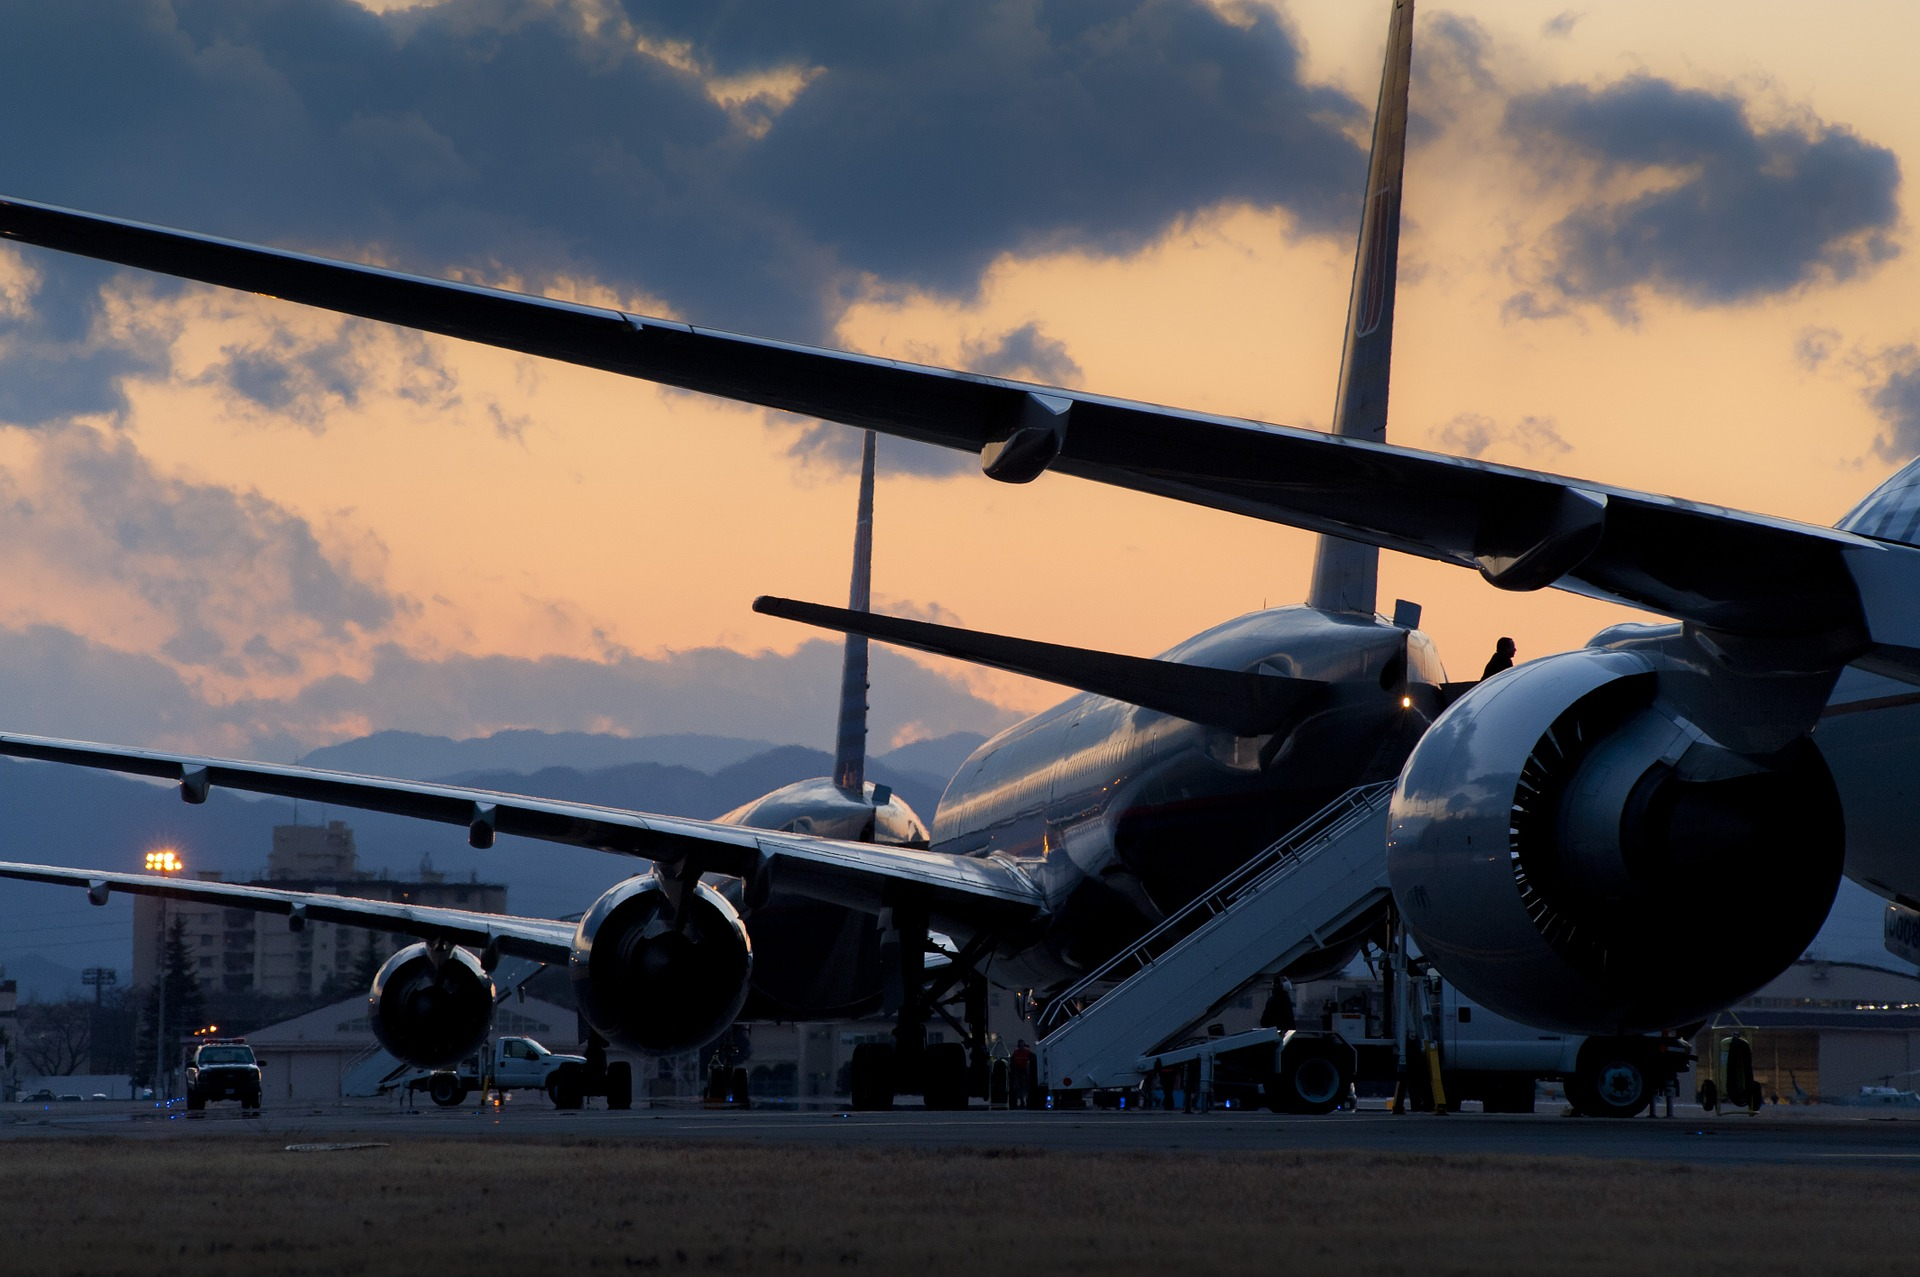 The rise of Schiphol Airport